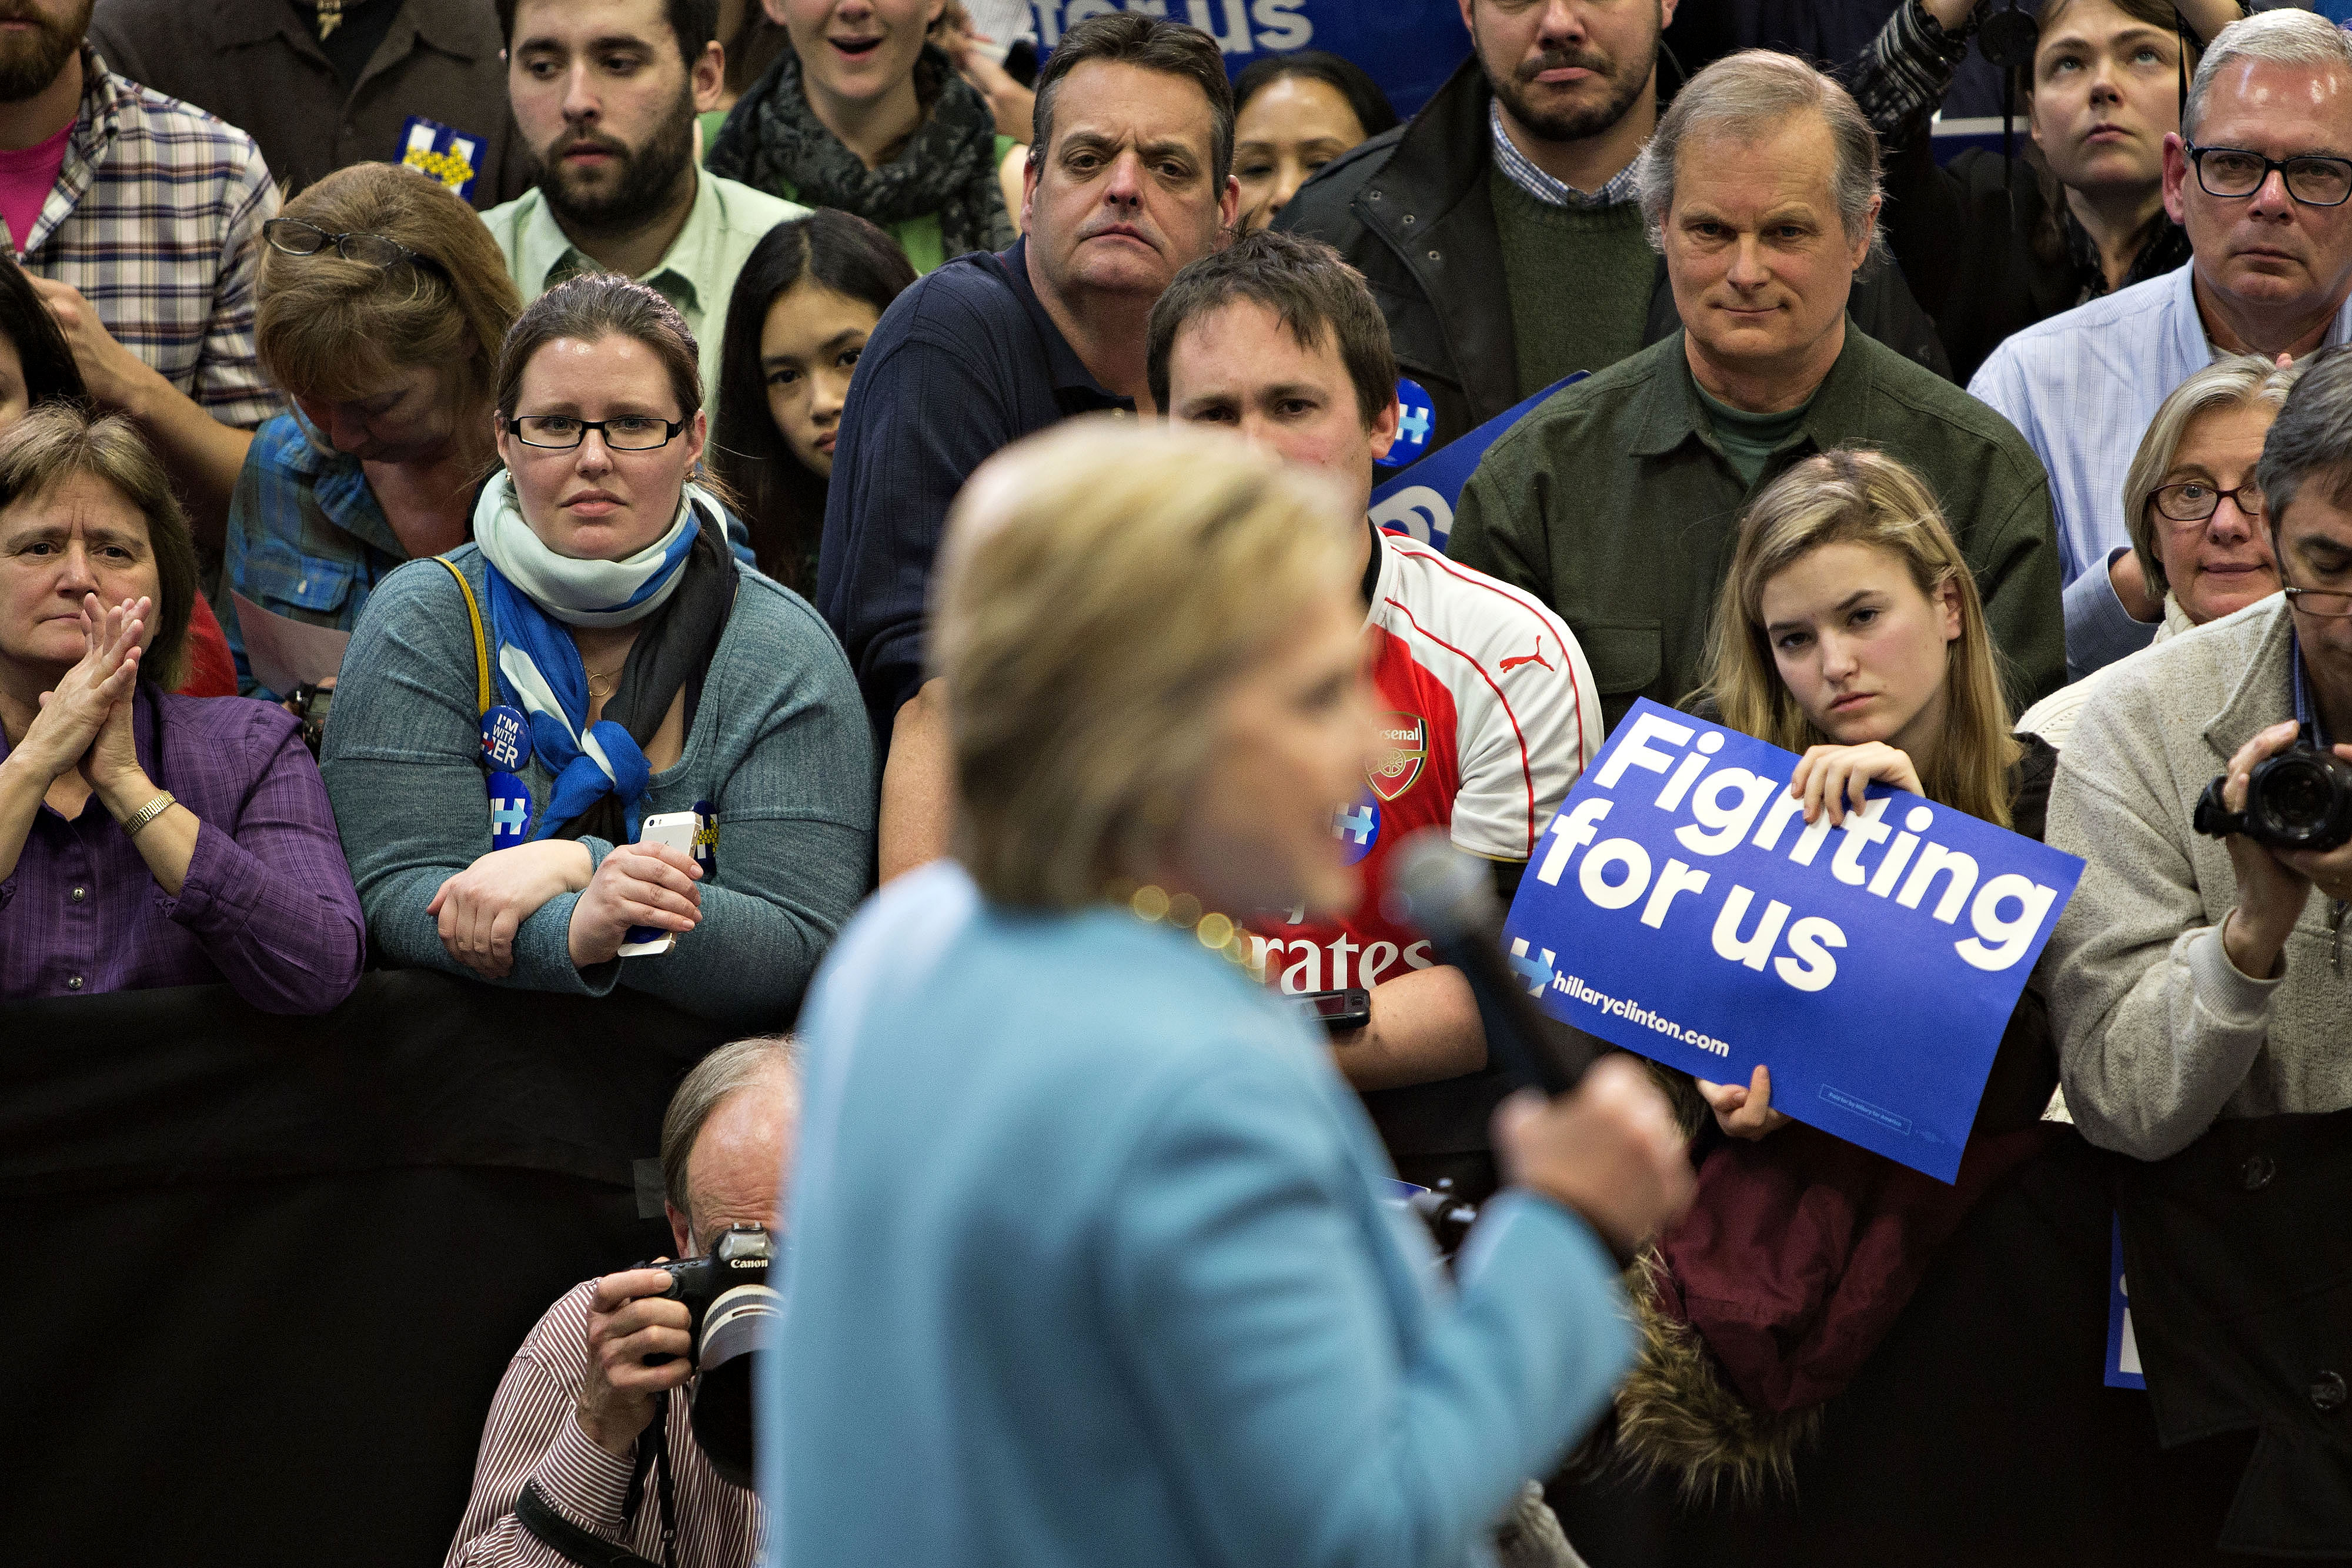 Attendees listen as Hillary Clinton, former Secretary of State and 2016 Democratic presidential candidate, speaks during a campaign event in Manchester, N.H., on Feb. 8, 2016